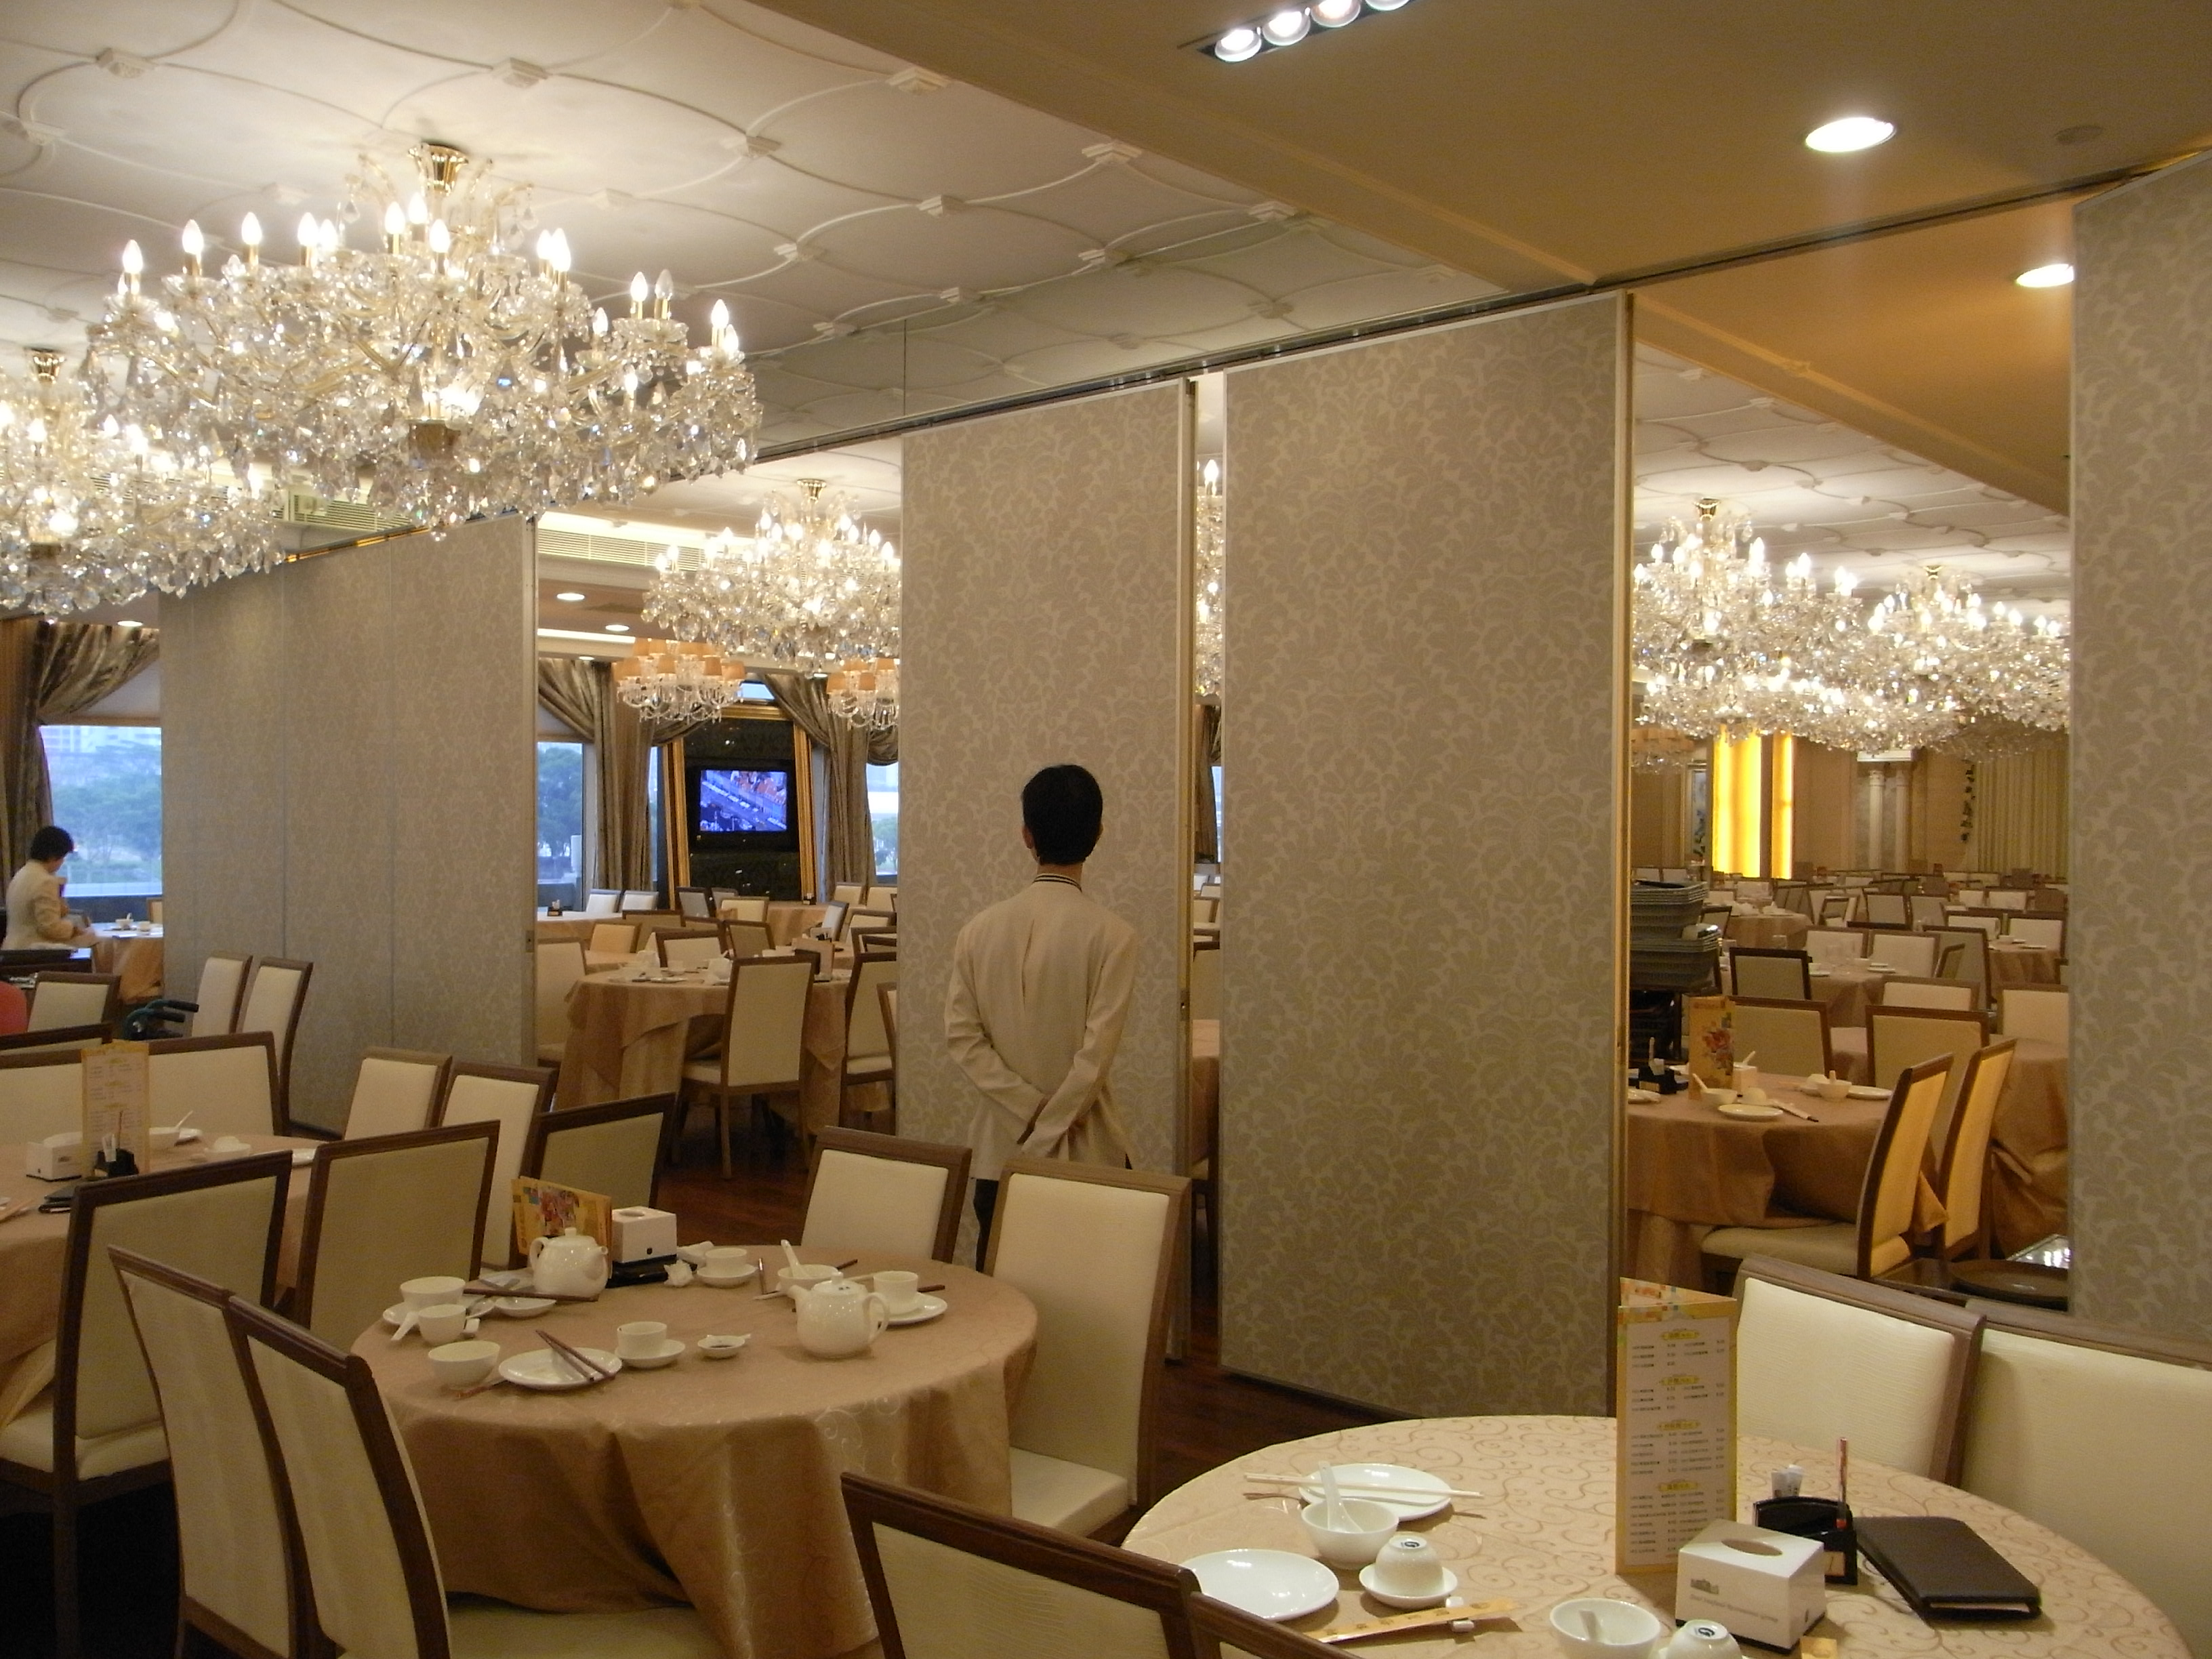 File Hk Shatin Star Seafood Floating Restaurant Interior Moving Partition